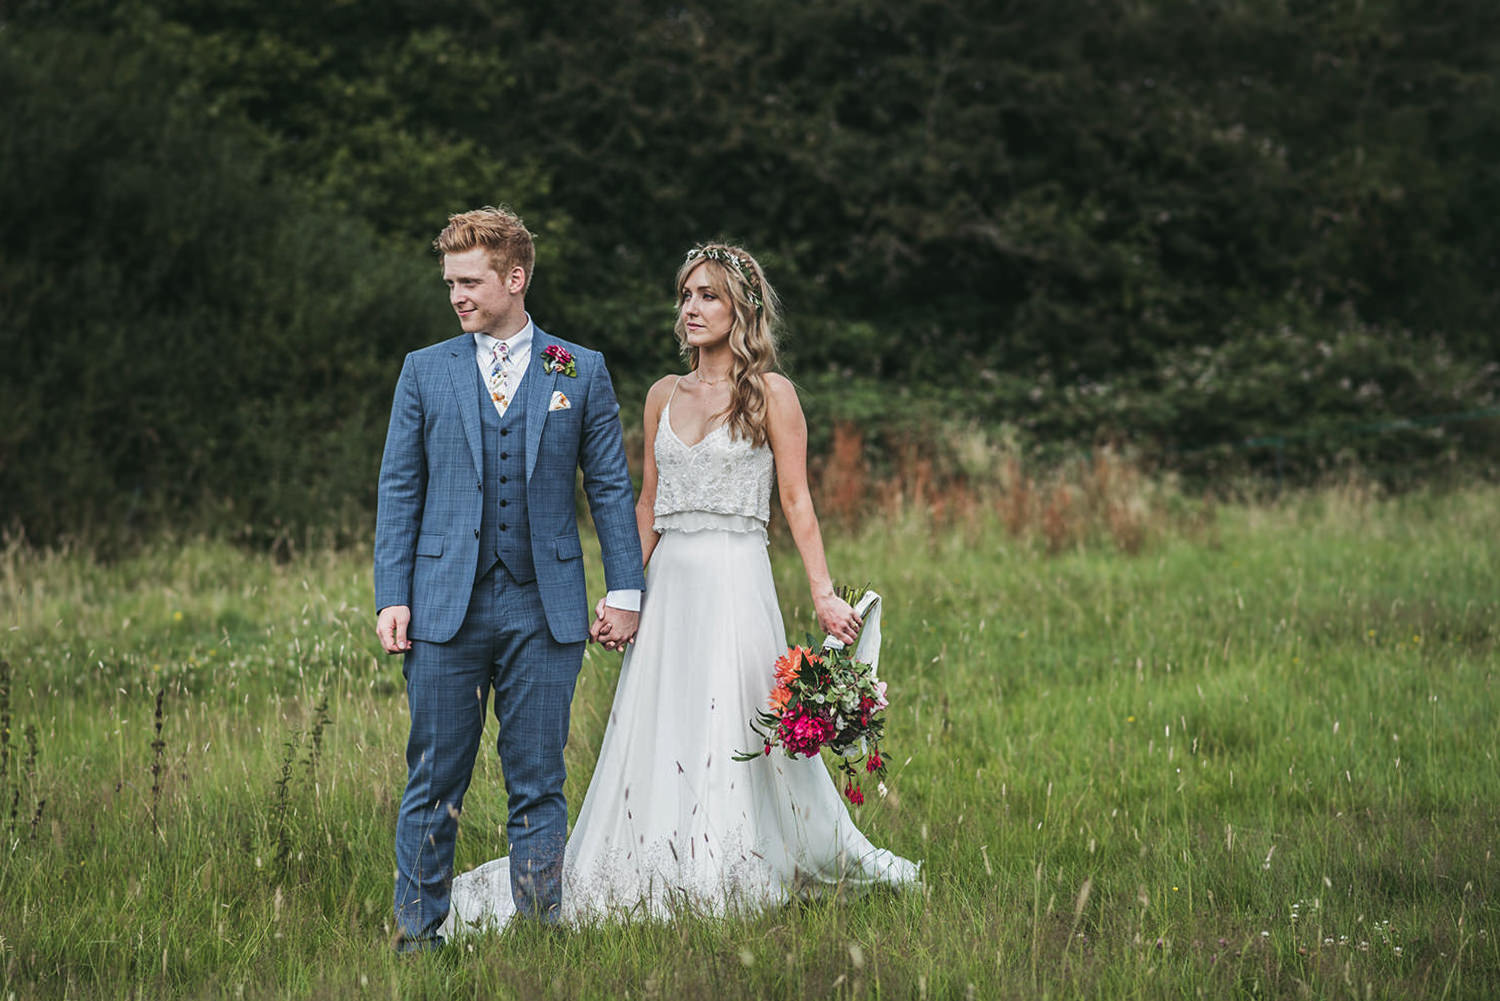 hertforshire-wedding-photographer-cambridgeshire-wedding-photography-by-lindsley-weddings.jpg